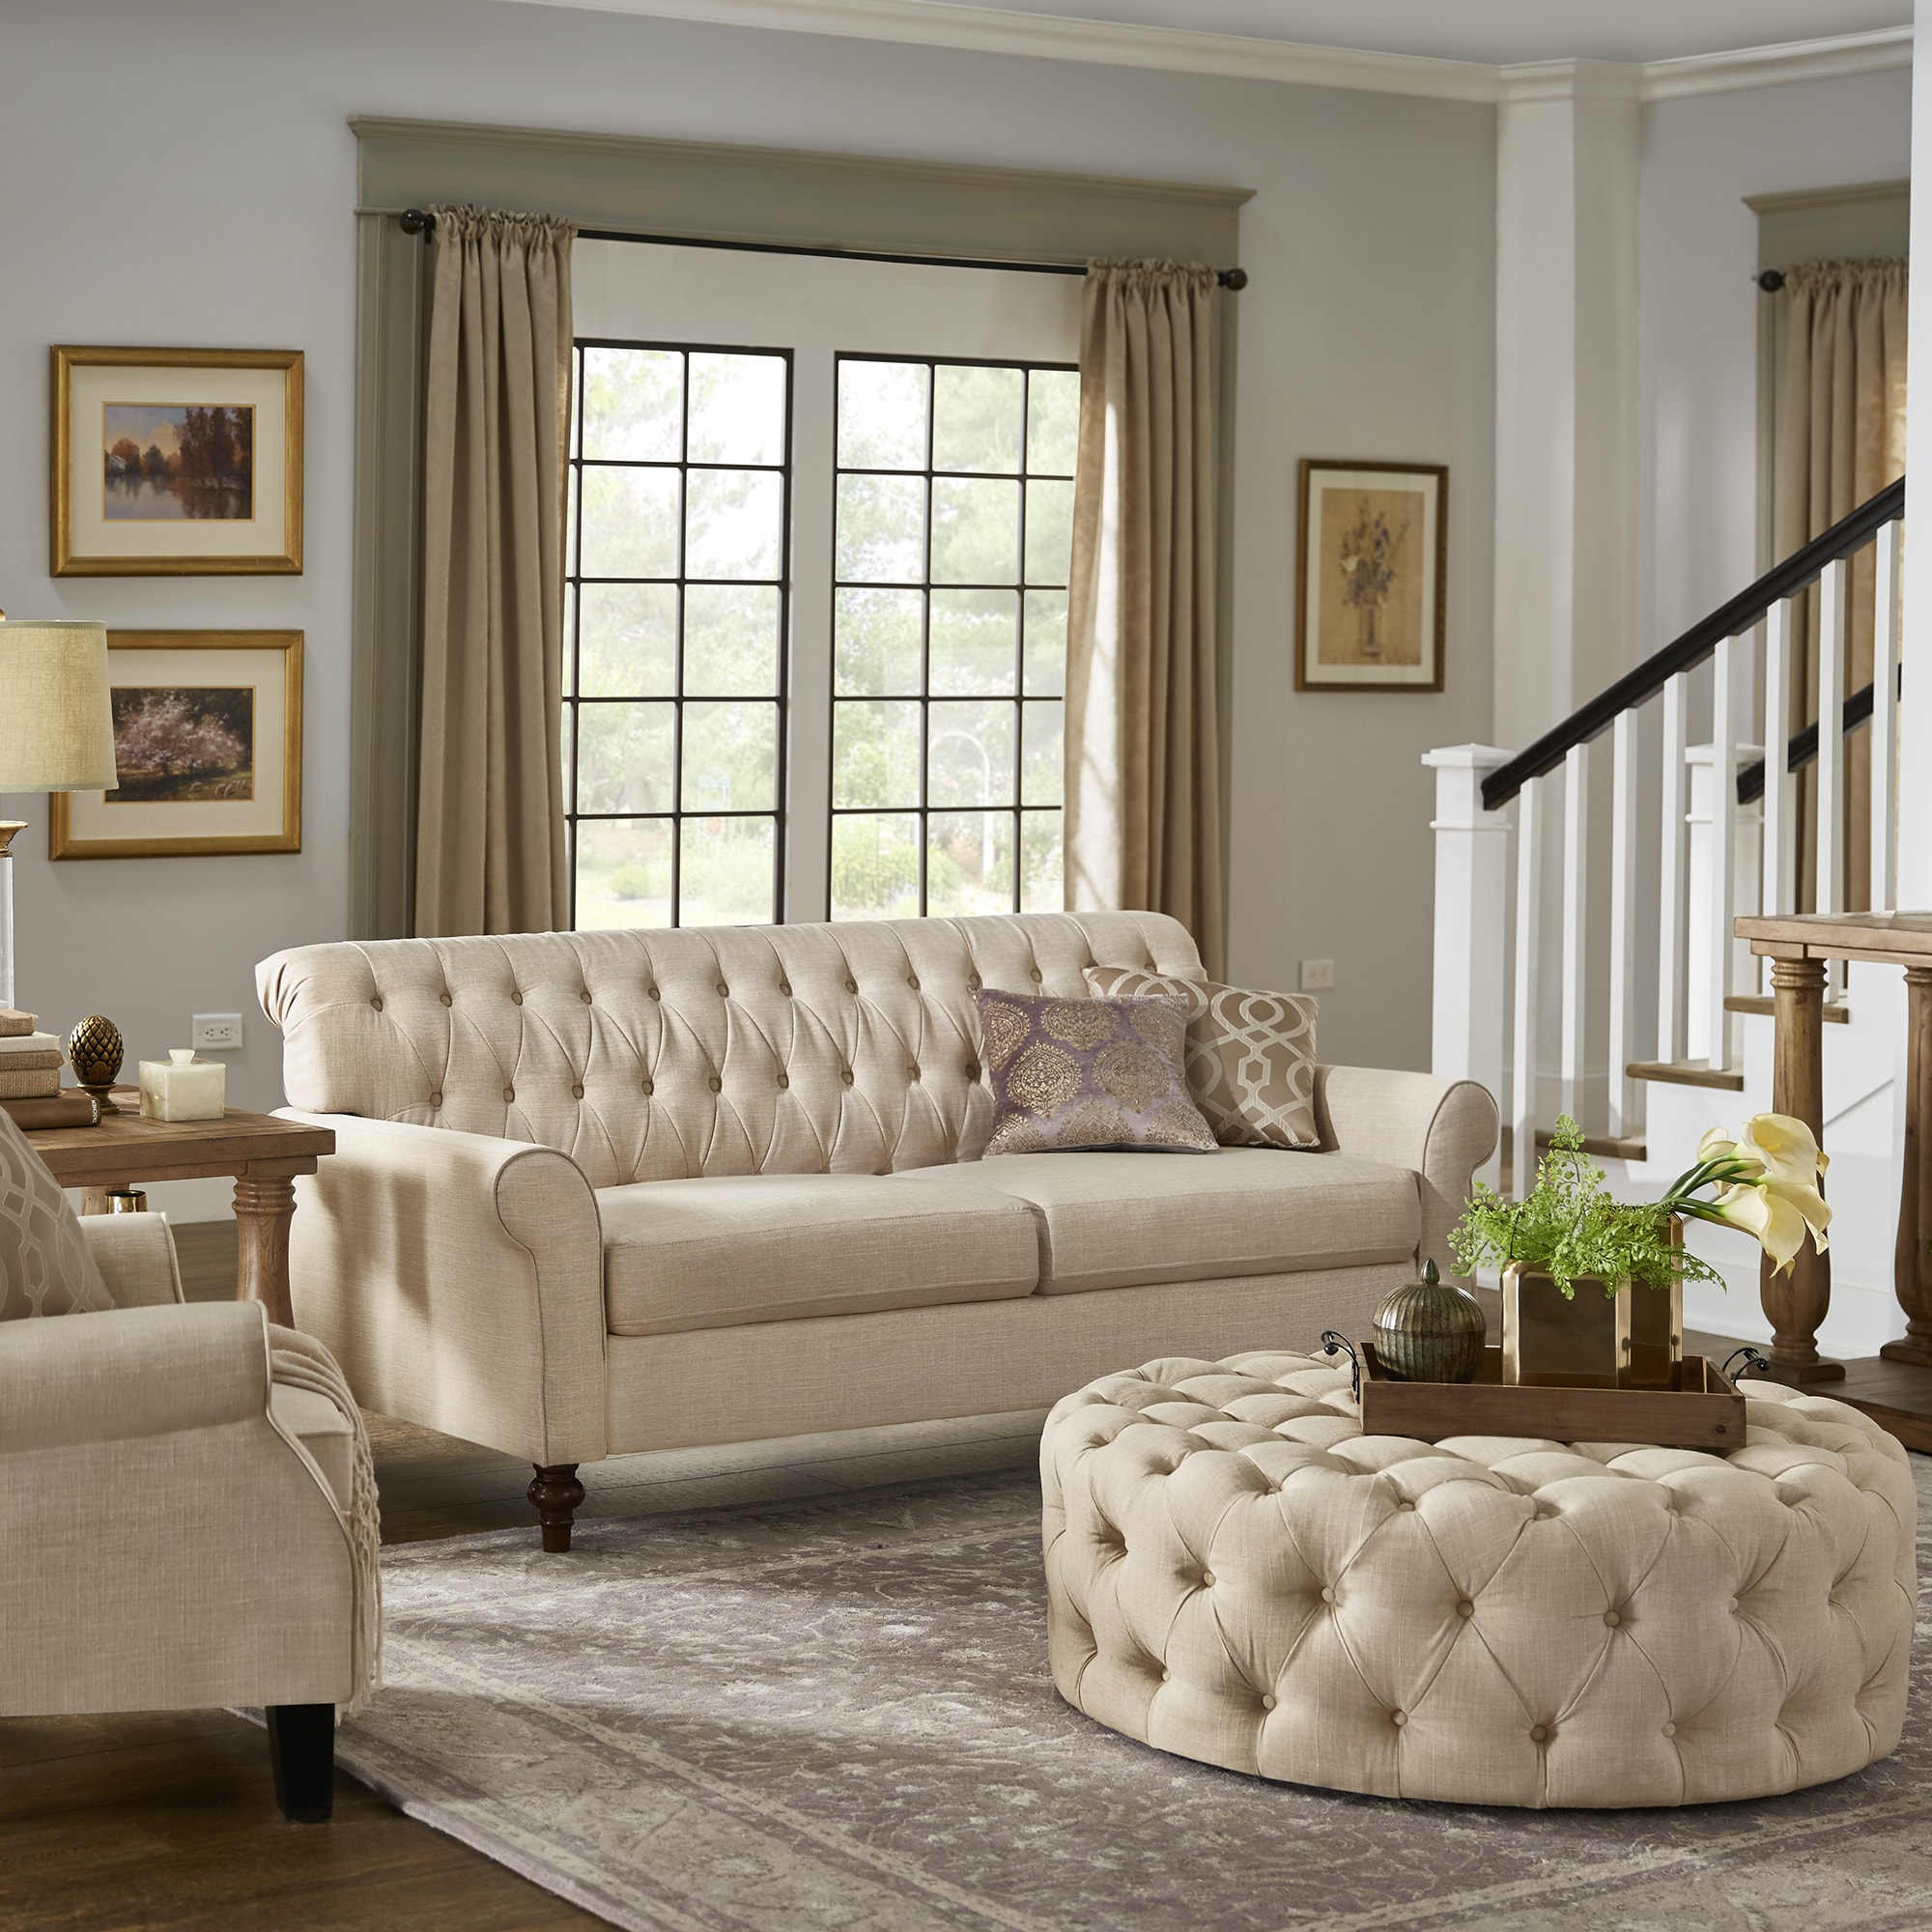 Shop tilda beige tufted back sofa with rolled arms by inspire q classic on sale free shipping today overstock com 25861248